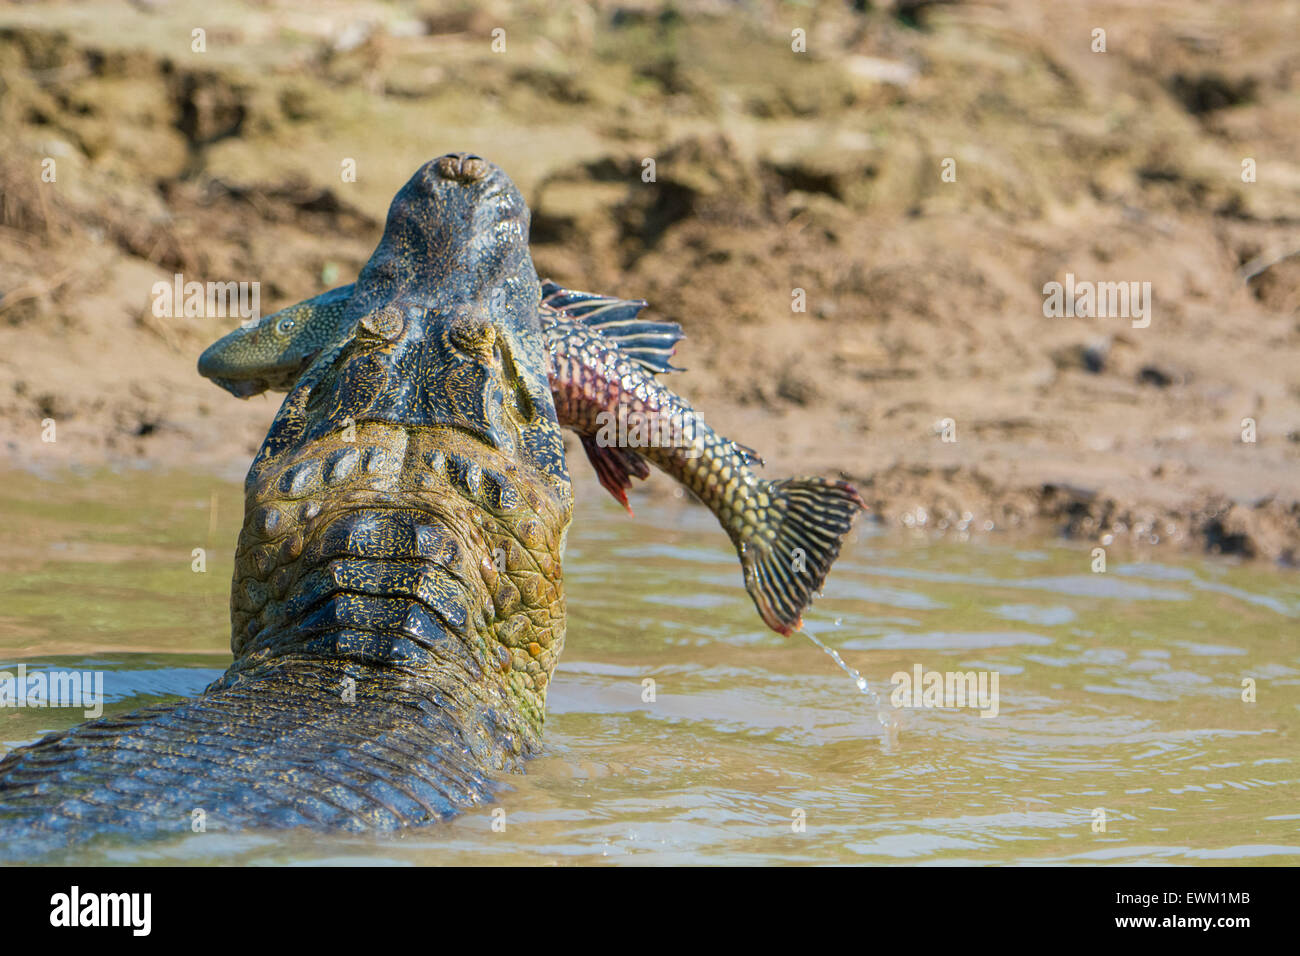 Yacare Caiman, Caiman crocodilus yacare, with a fish in its mouth, on the bank of a river in the Pantanal, Mato Stock Photo